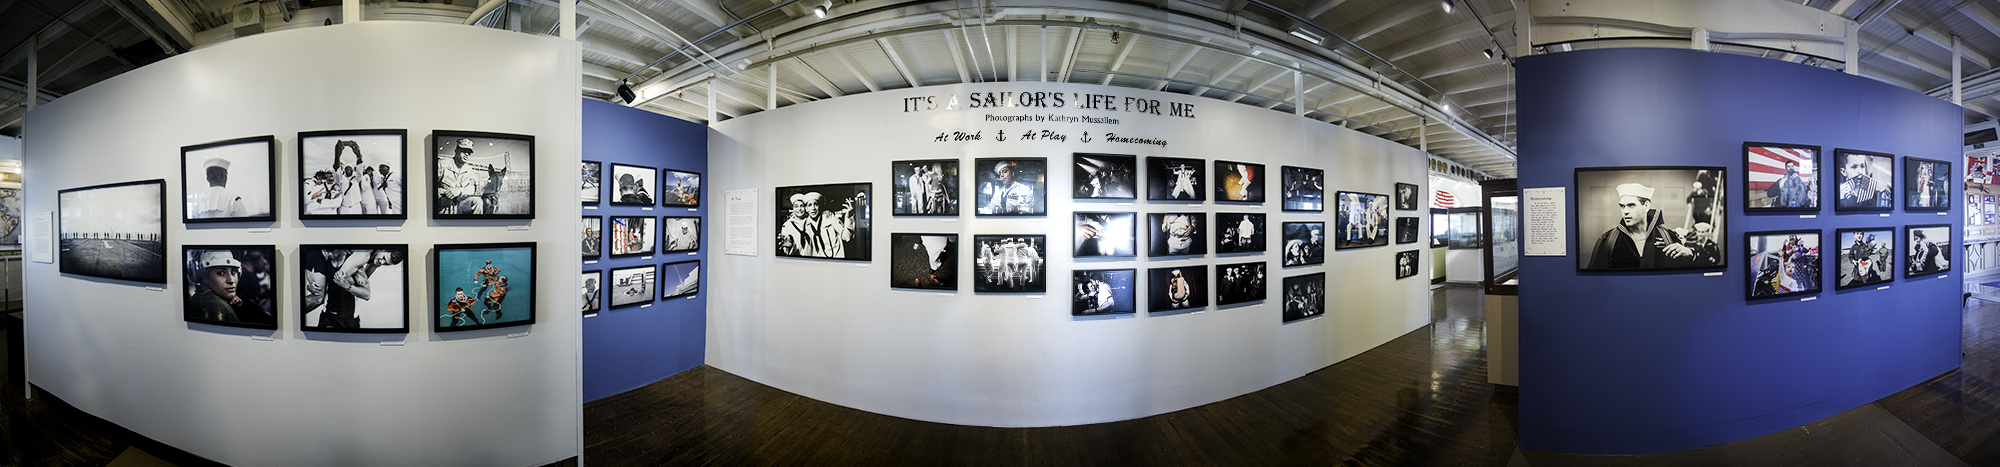 It's a Sailor's Life for Me, San Diego Maritime Museum, San Diego CA, 2016 - 17